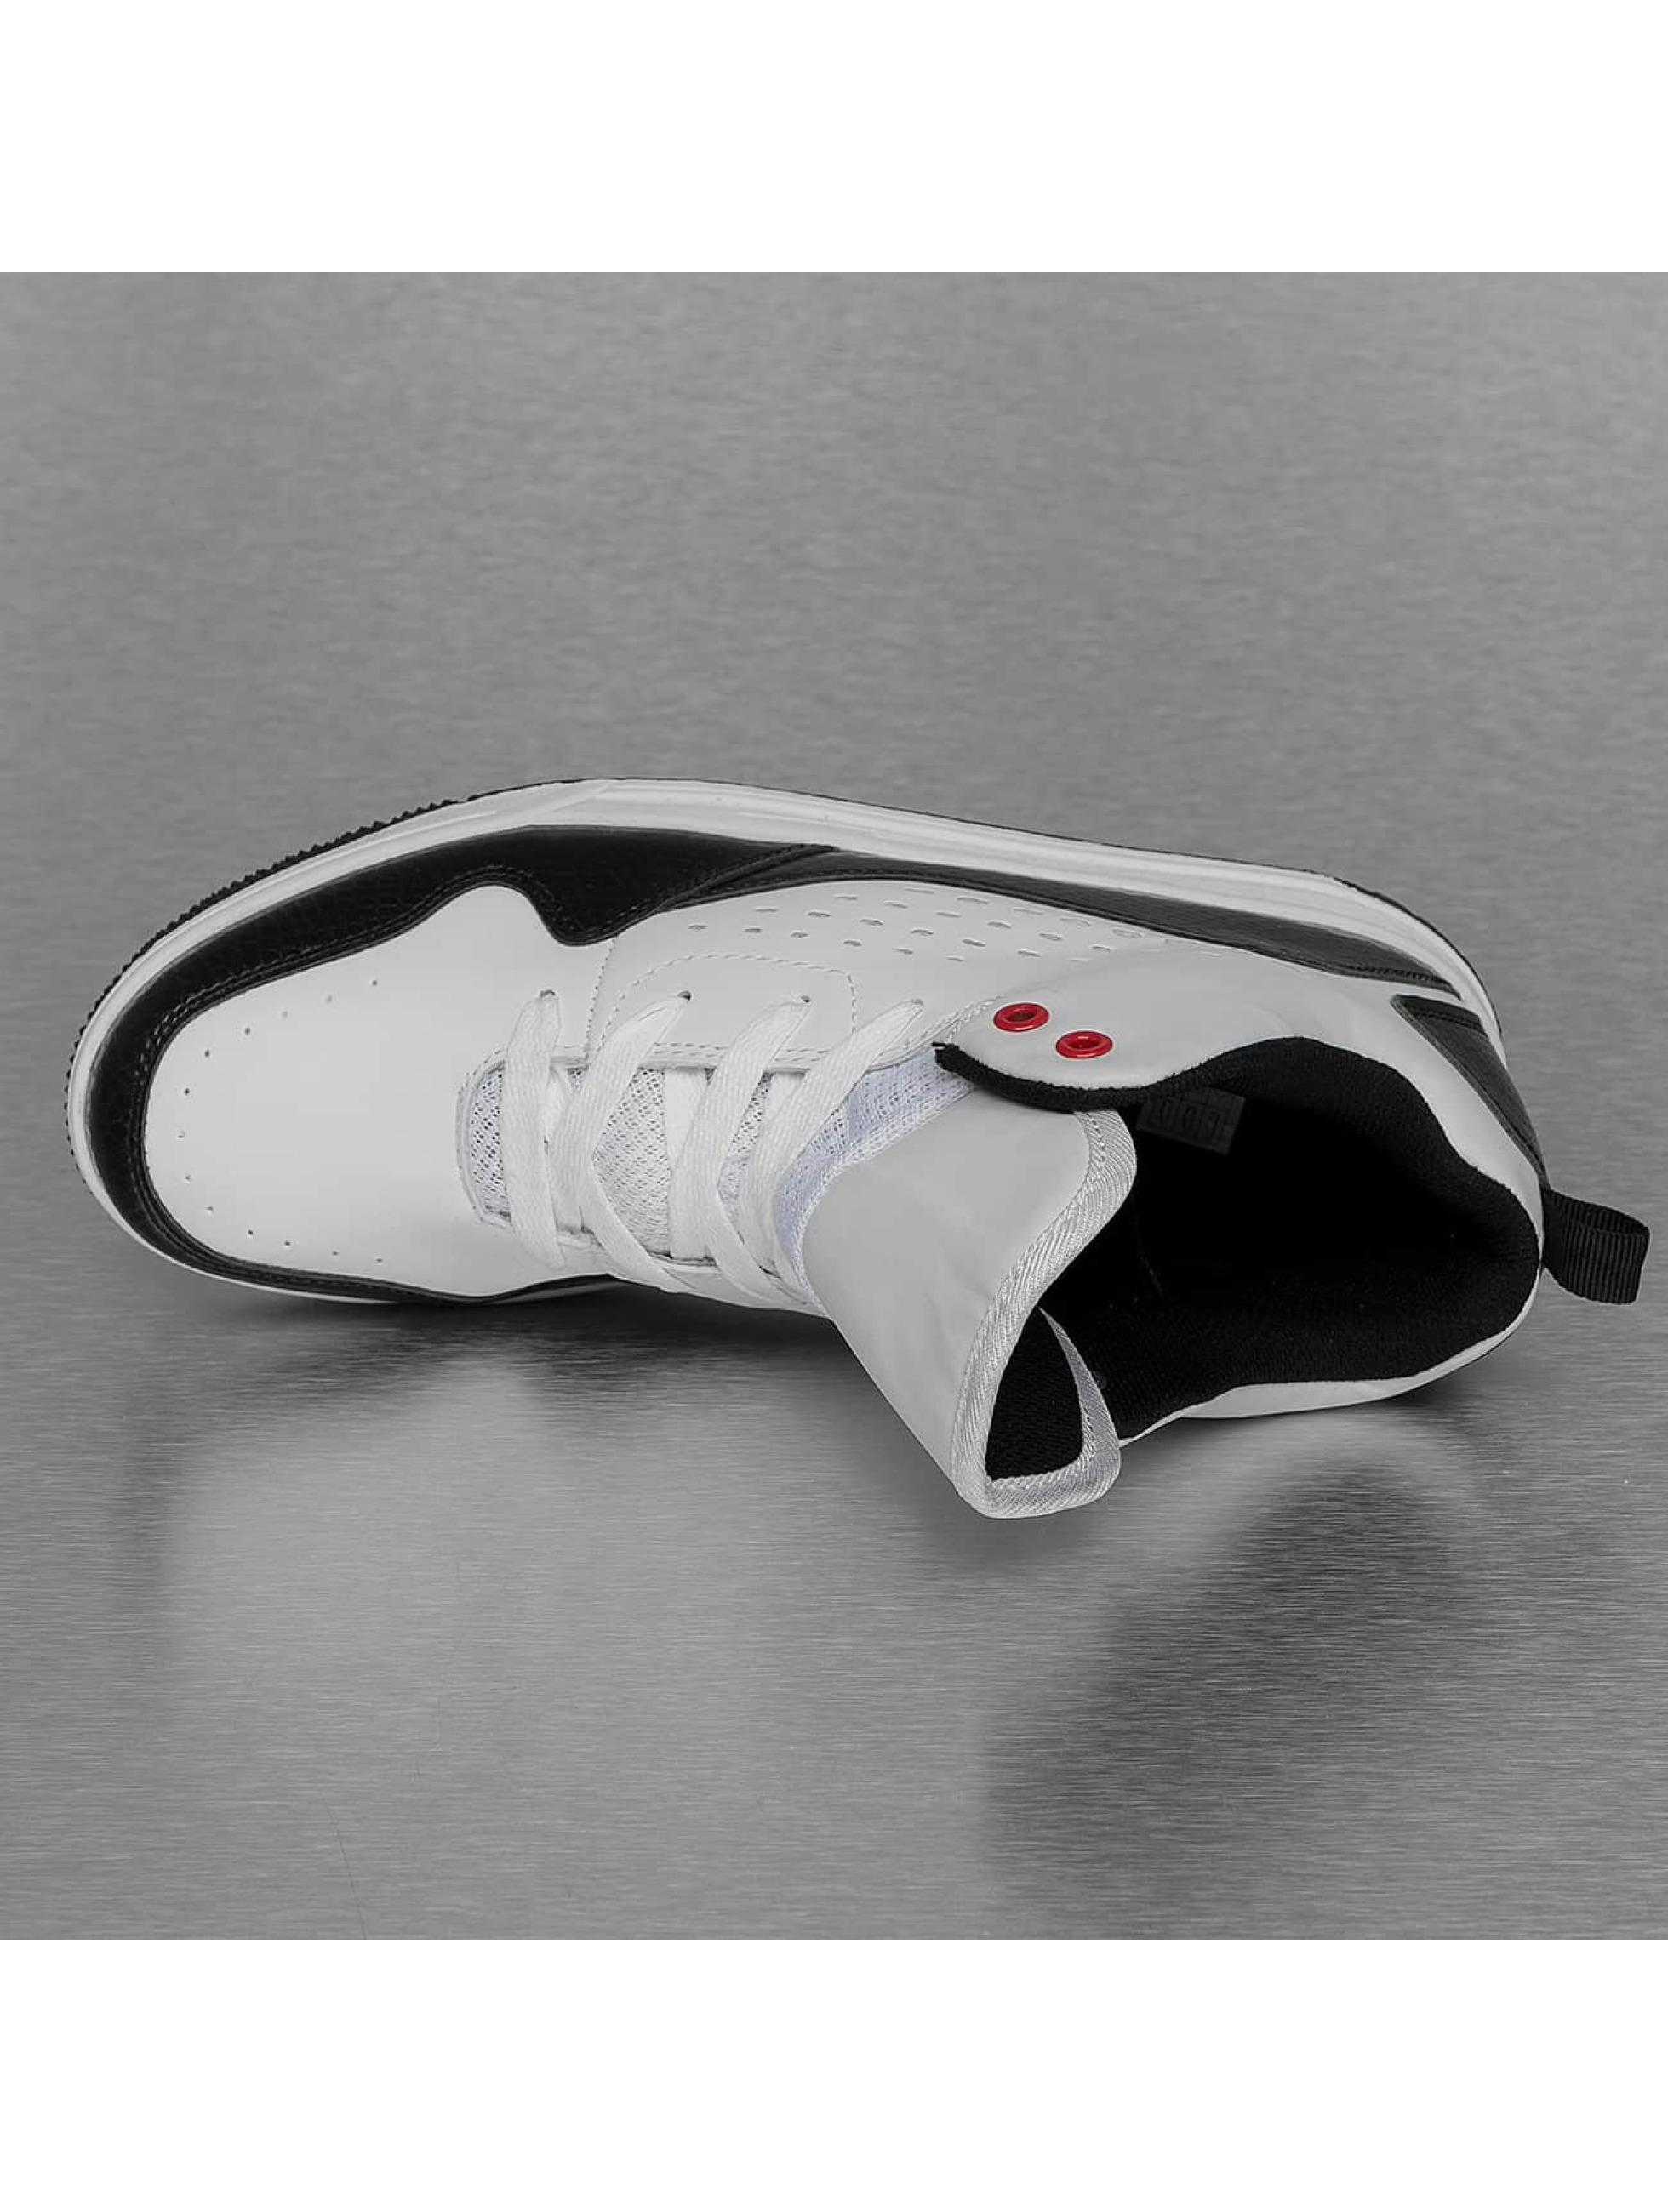 New York Style Sneakers Mid Top white